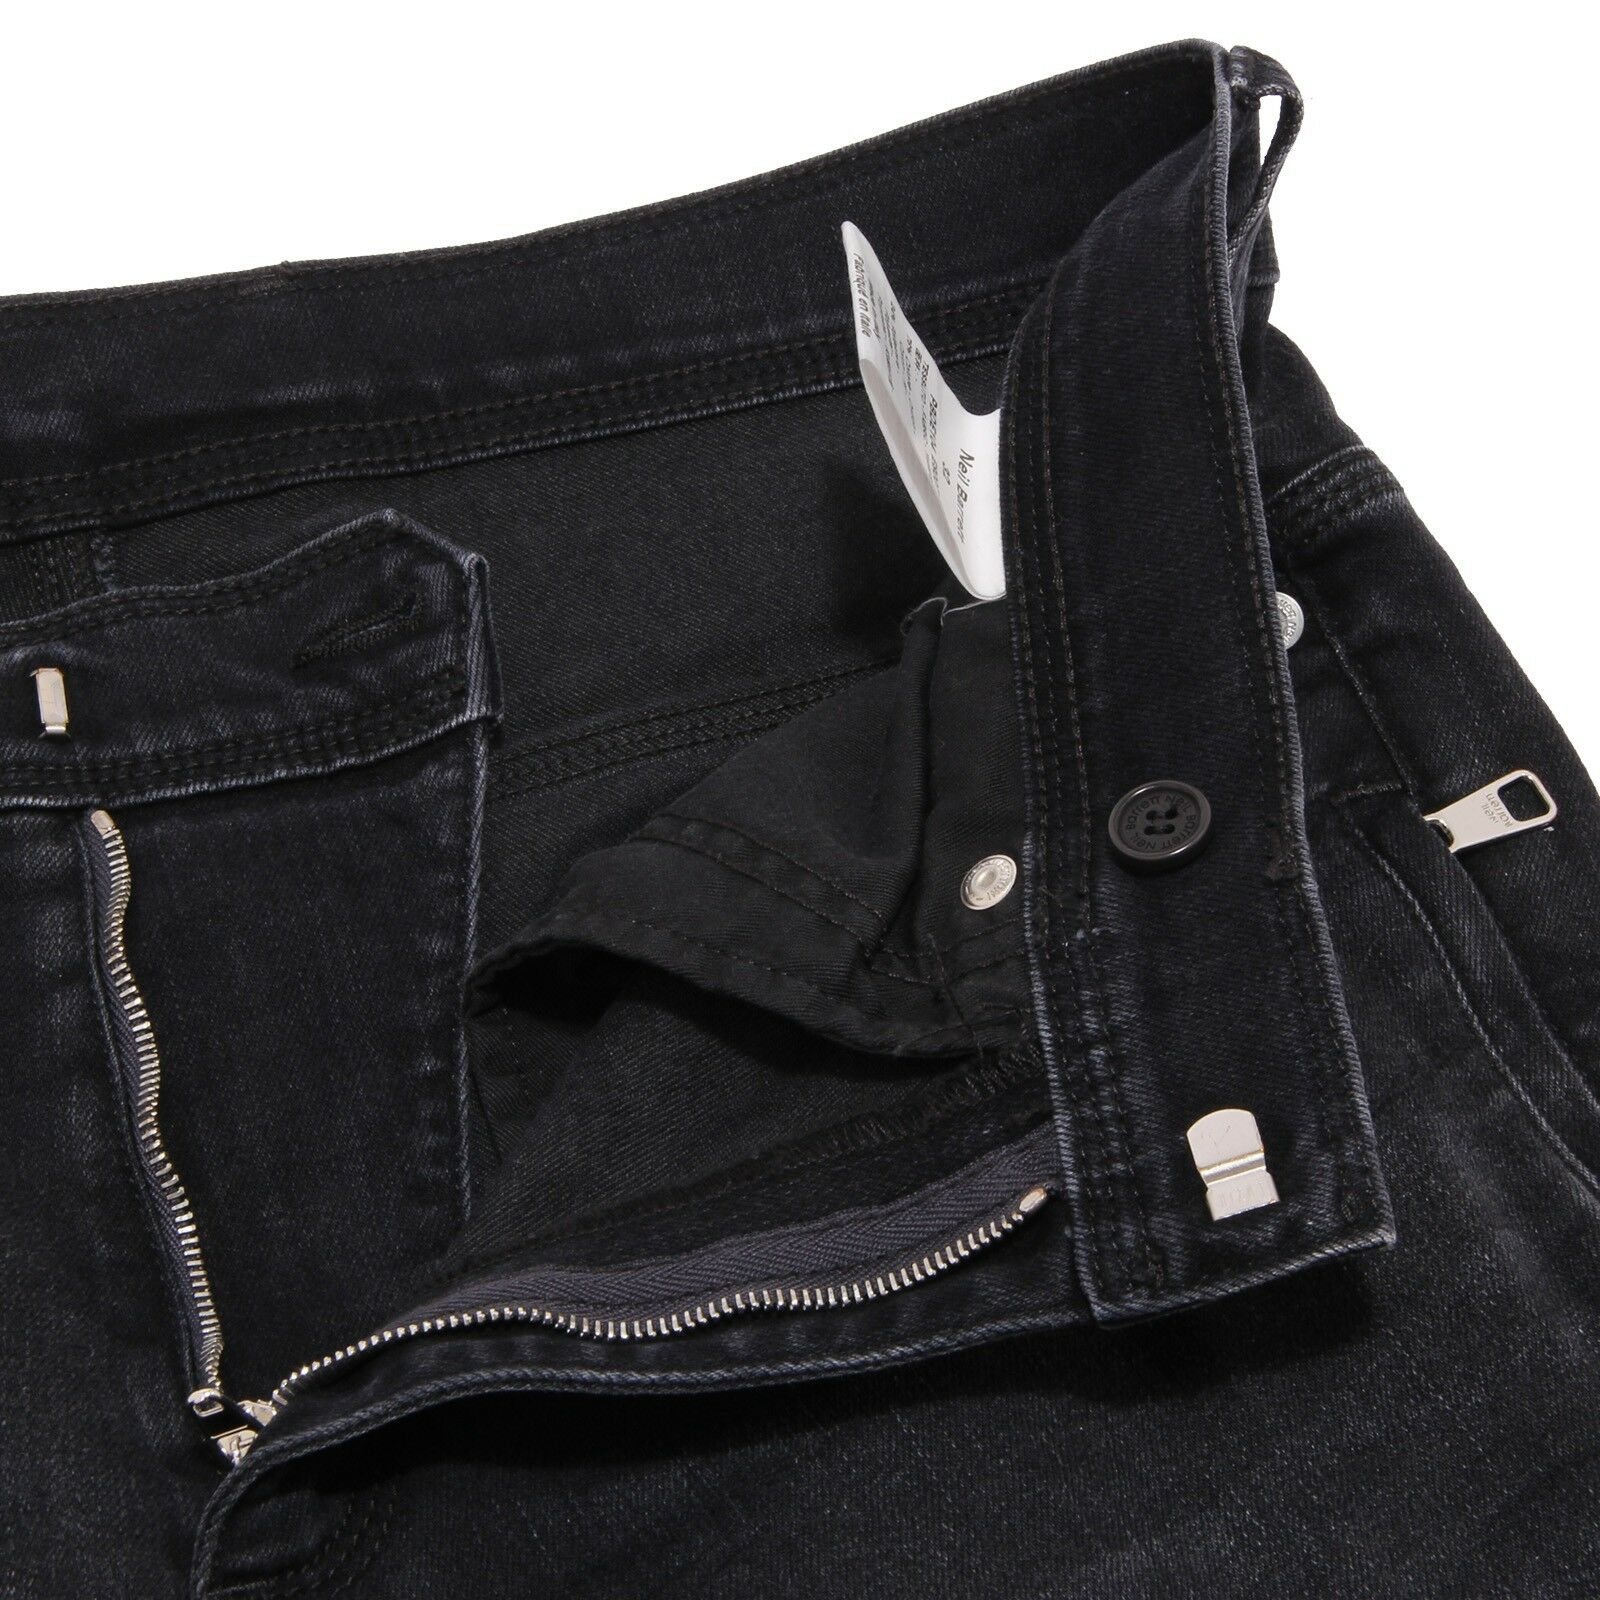 1788W jeans uomo NEIL BARRETT nero denim trouser pant man man man fb7408